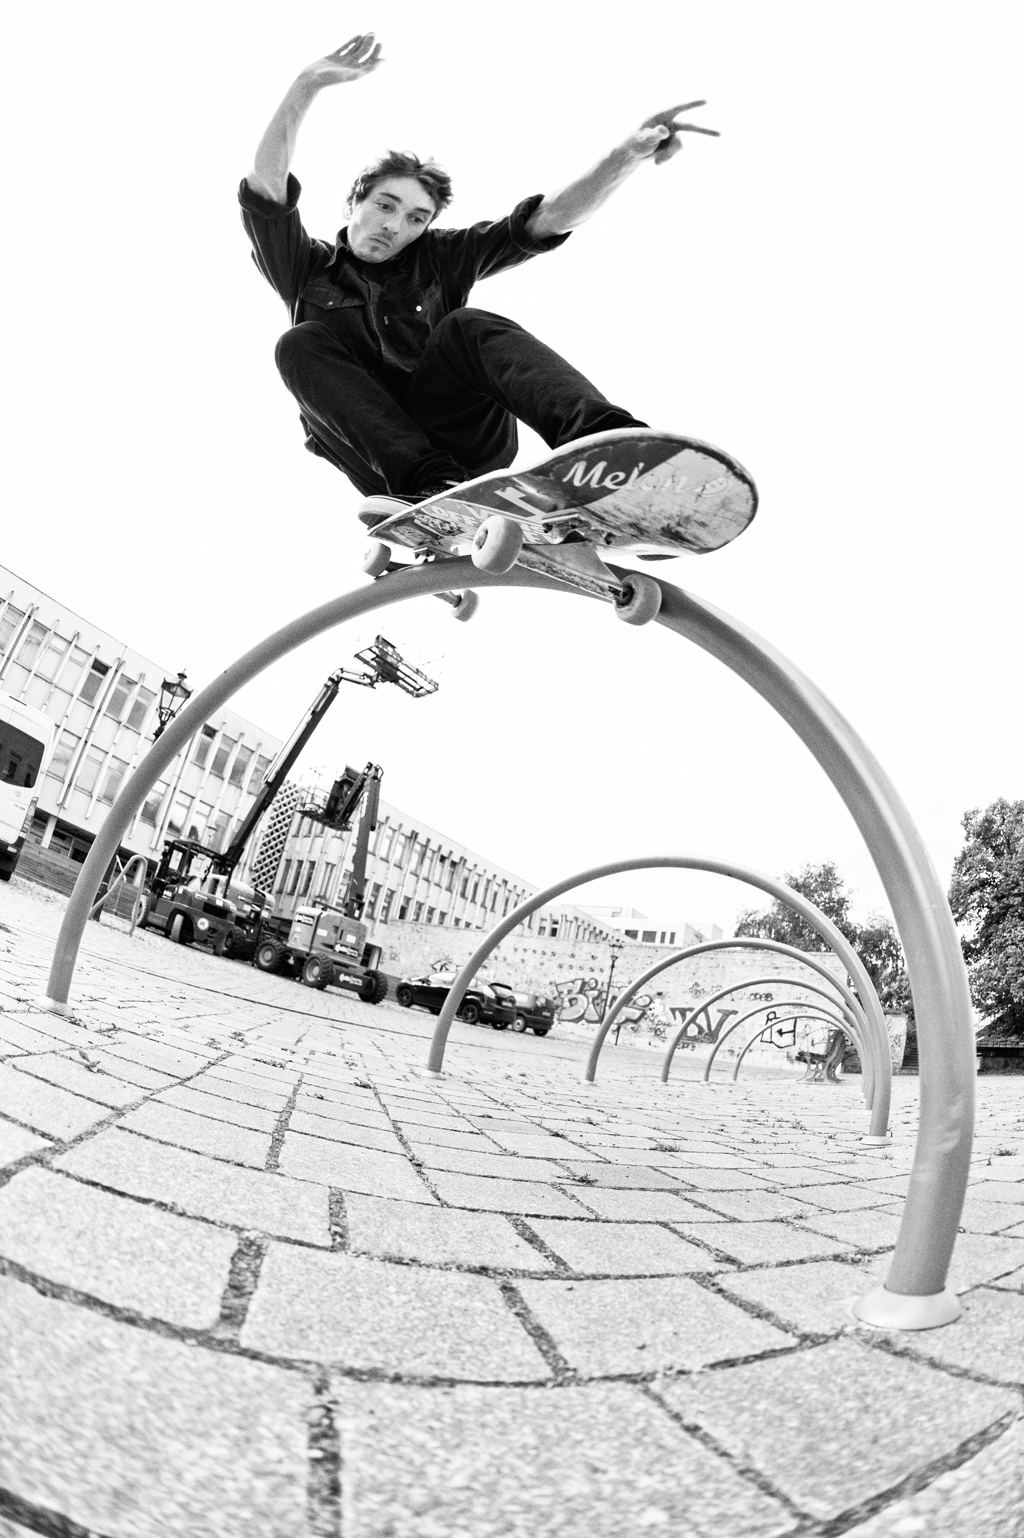 Kris_Vile_Polejam_Bs_Smith_Sharpened_AdobeRGB_43370_B&W